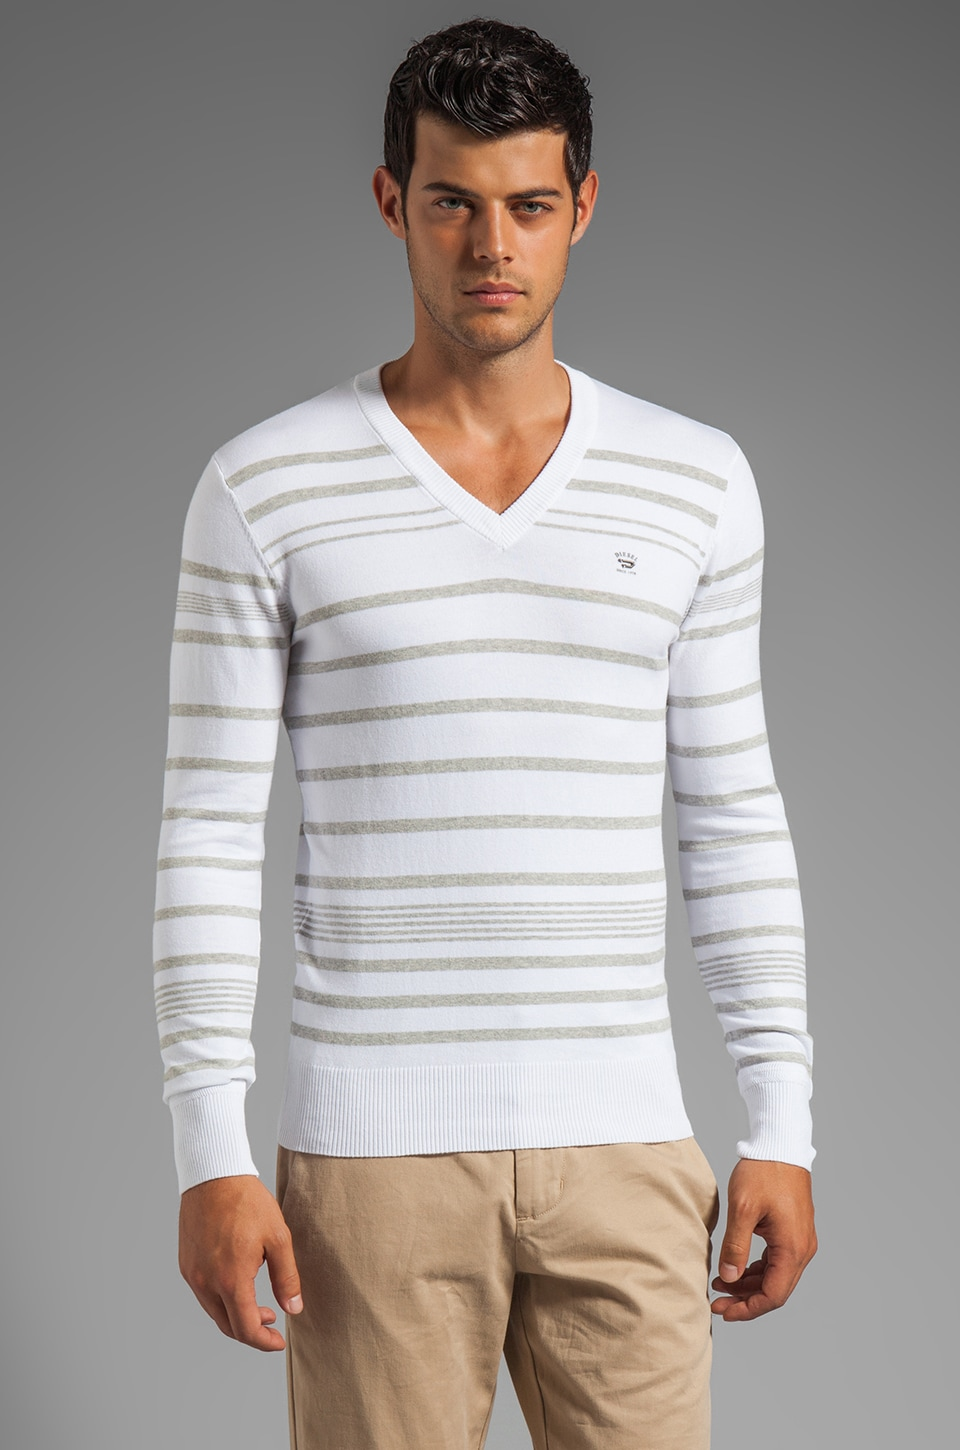 Diesel Riga Stripe Sweater in White